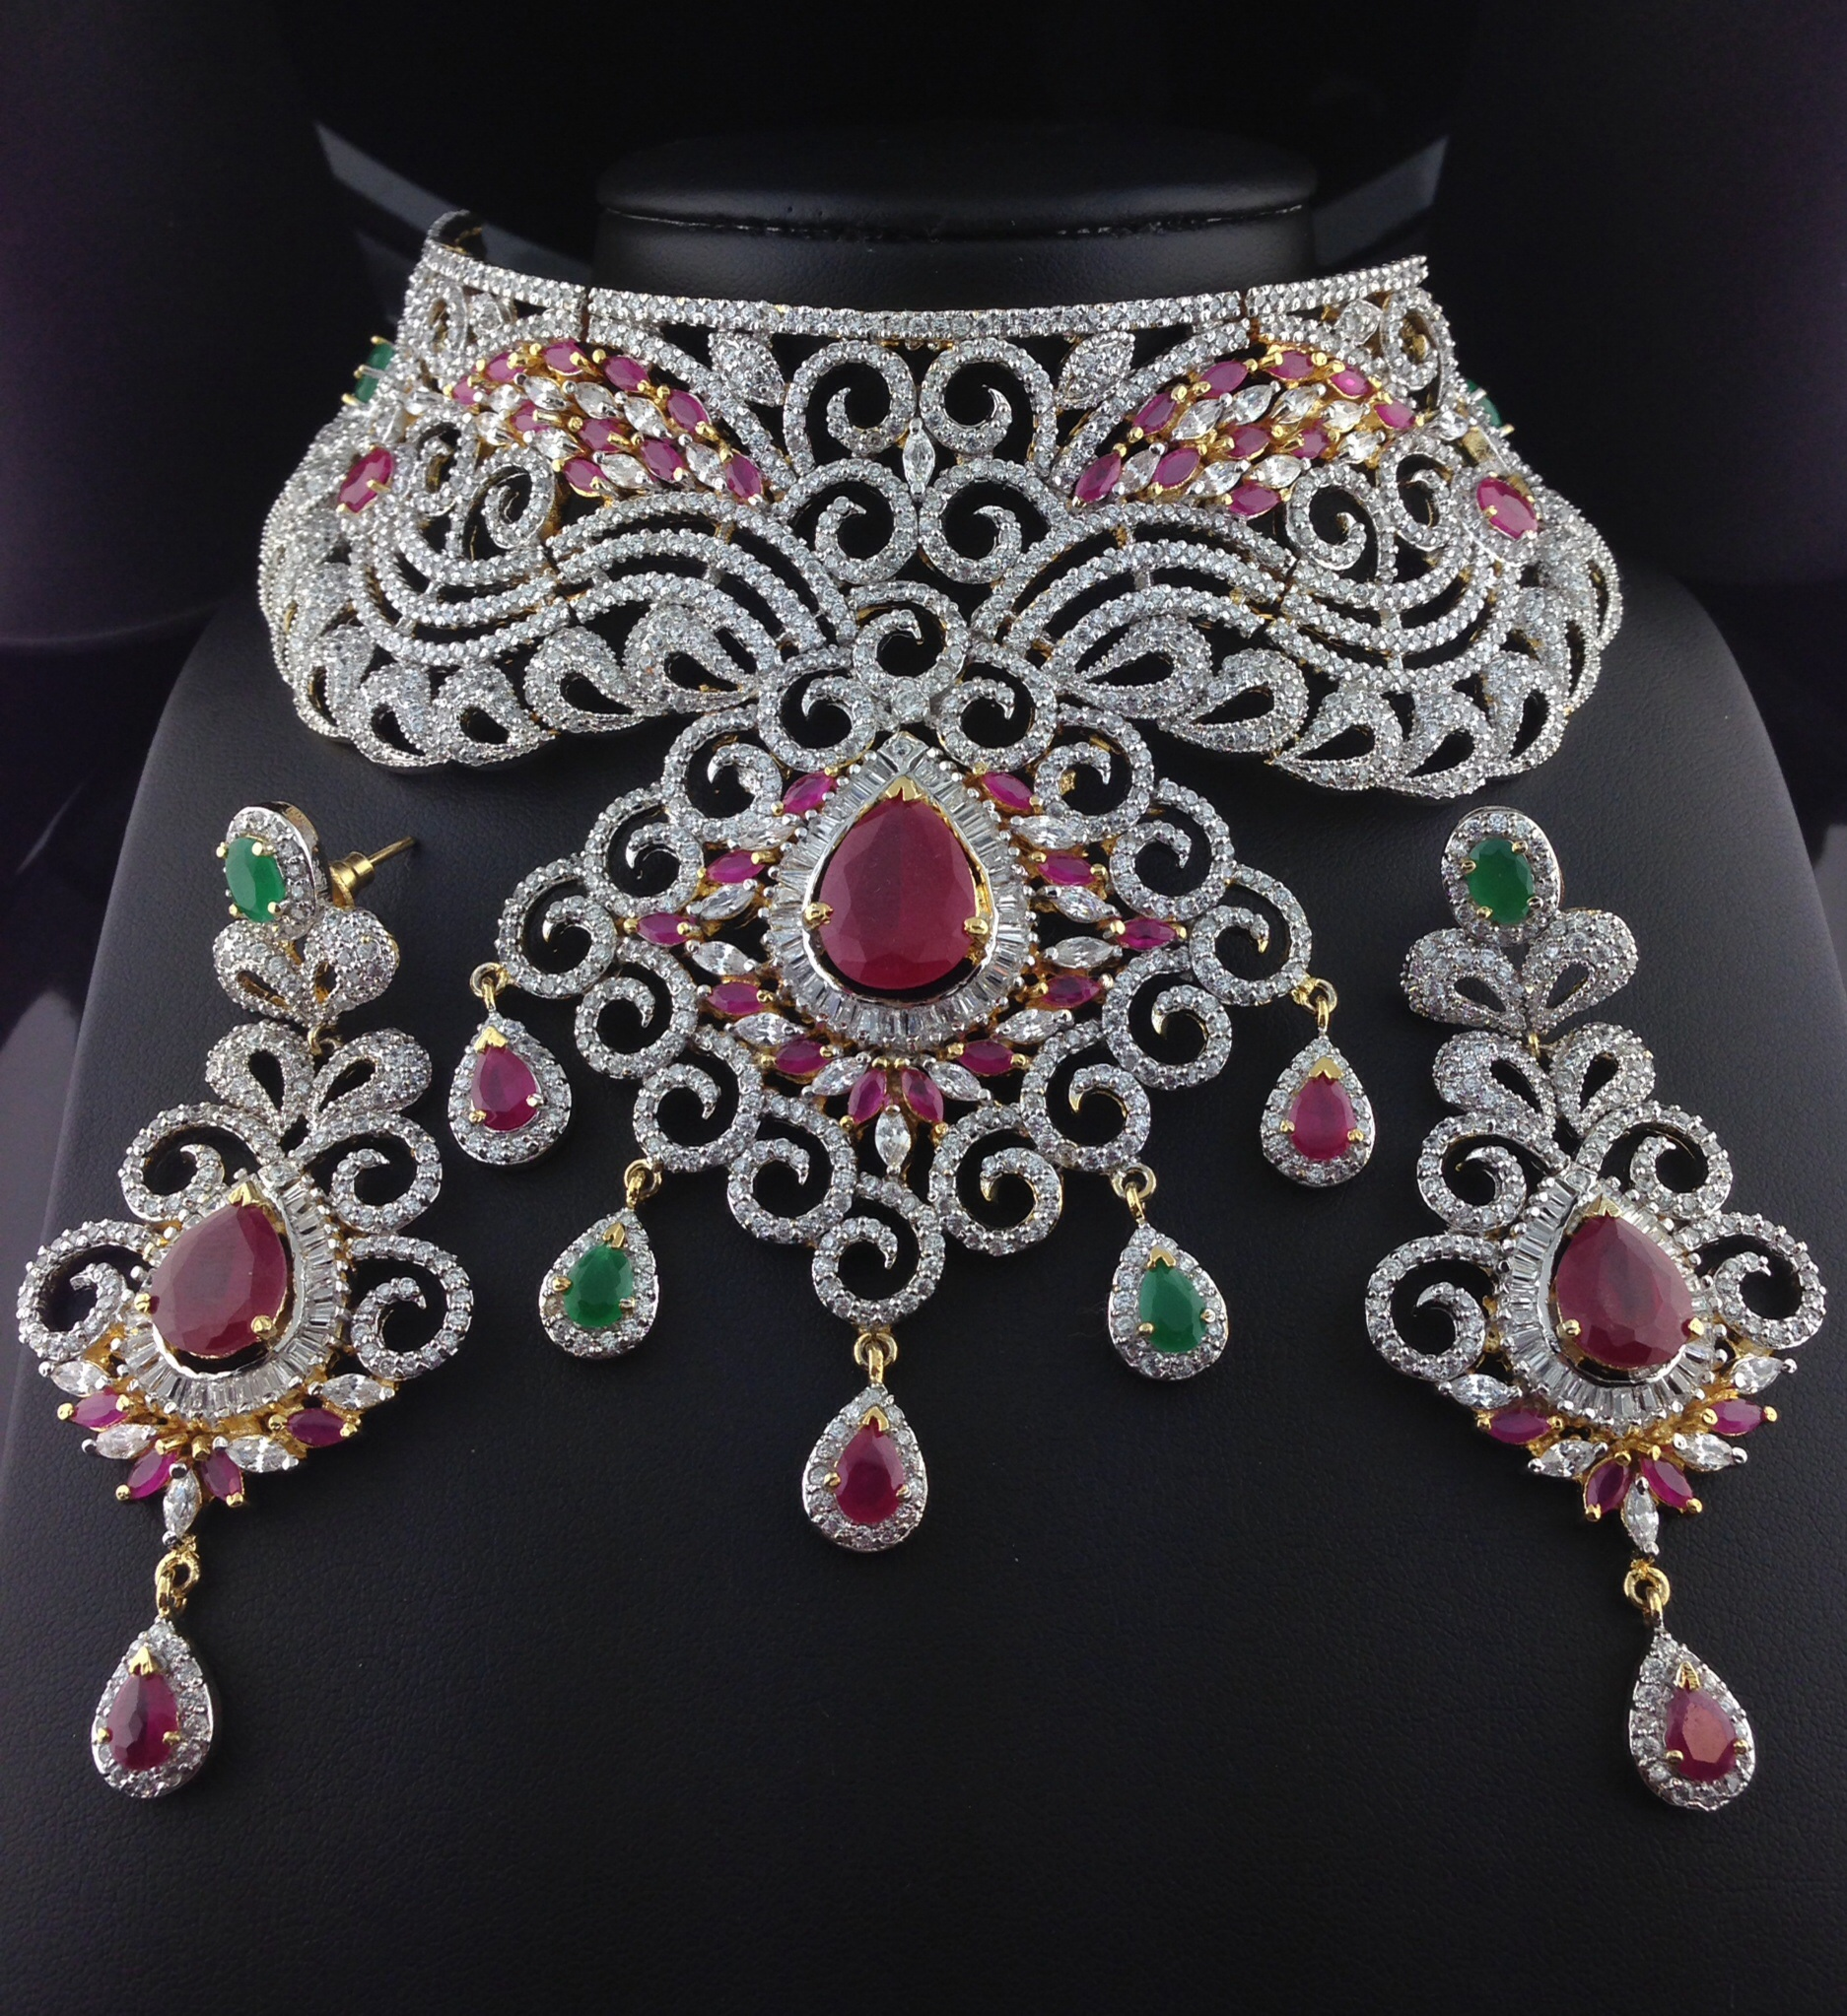 Stunning American Diamond Bridal Set With Rubies and Emeralds